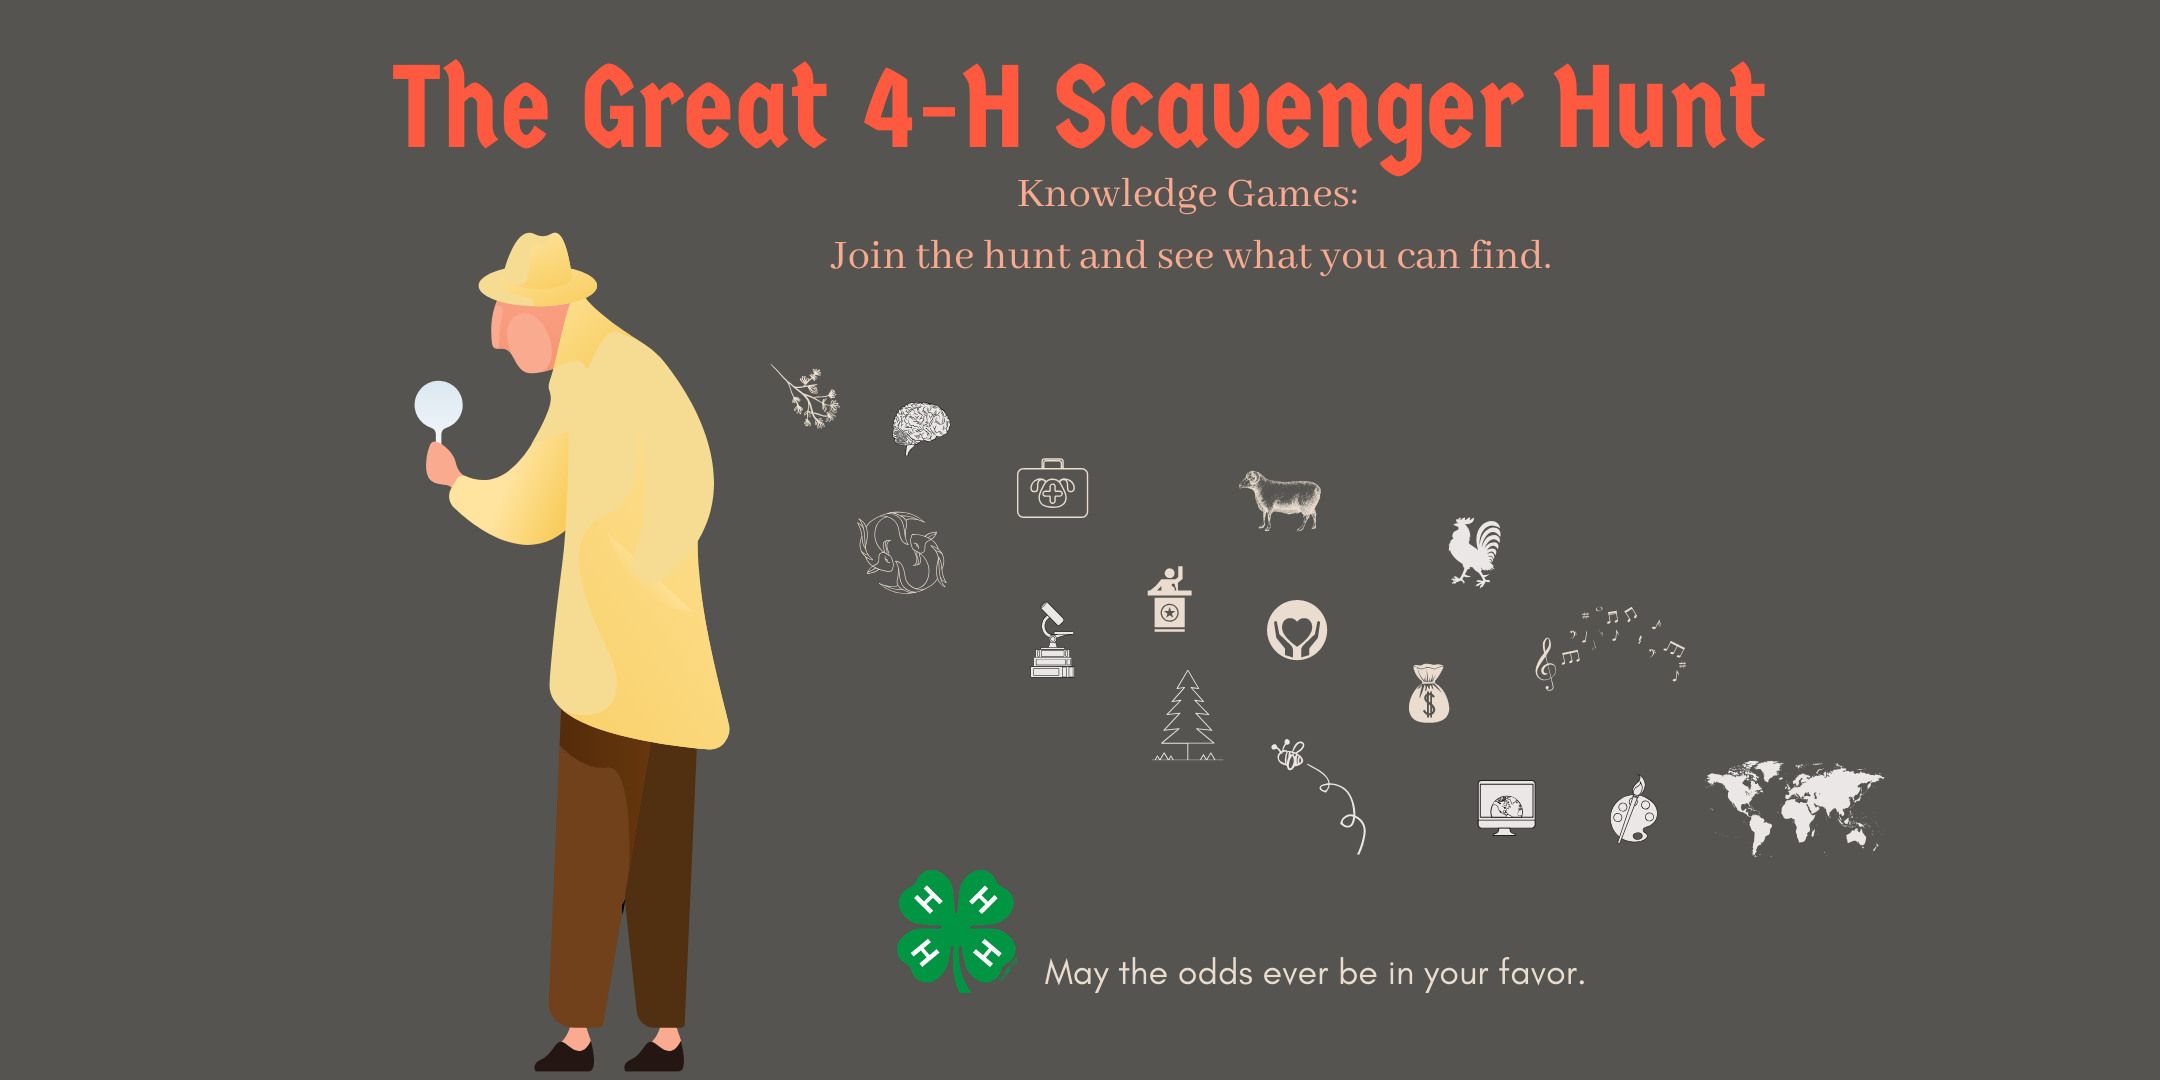 The Great 4-H Scavenger Hunt, Knowledge Games: Join the Hunt and See what you can find, A detective in a yellow hat and coat walks away while images of the scavenger hunt float behine